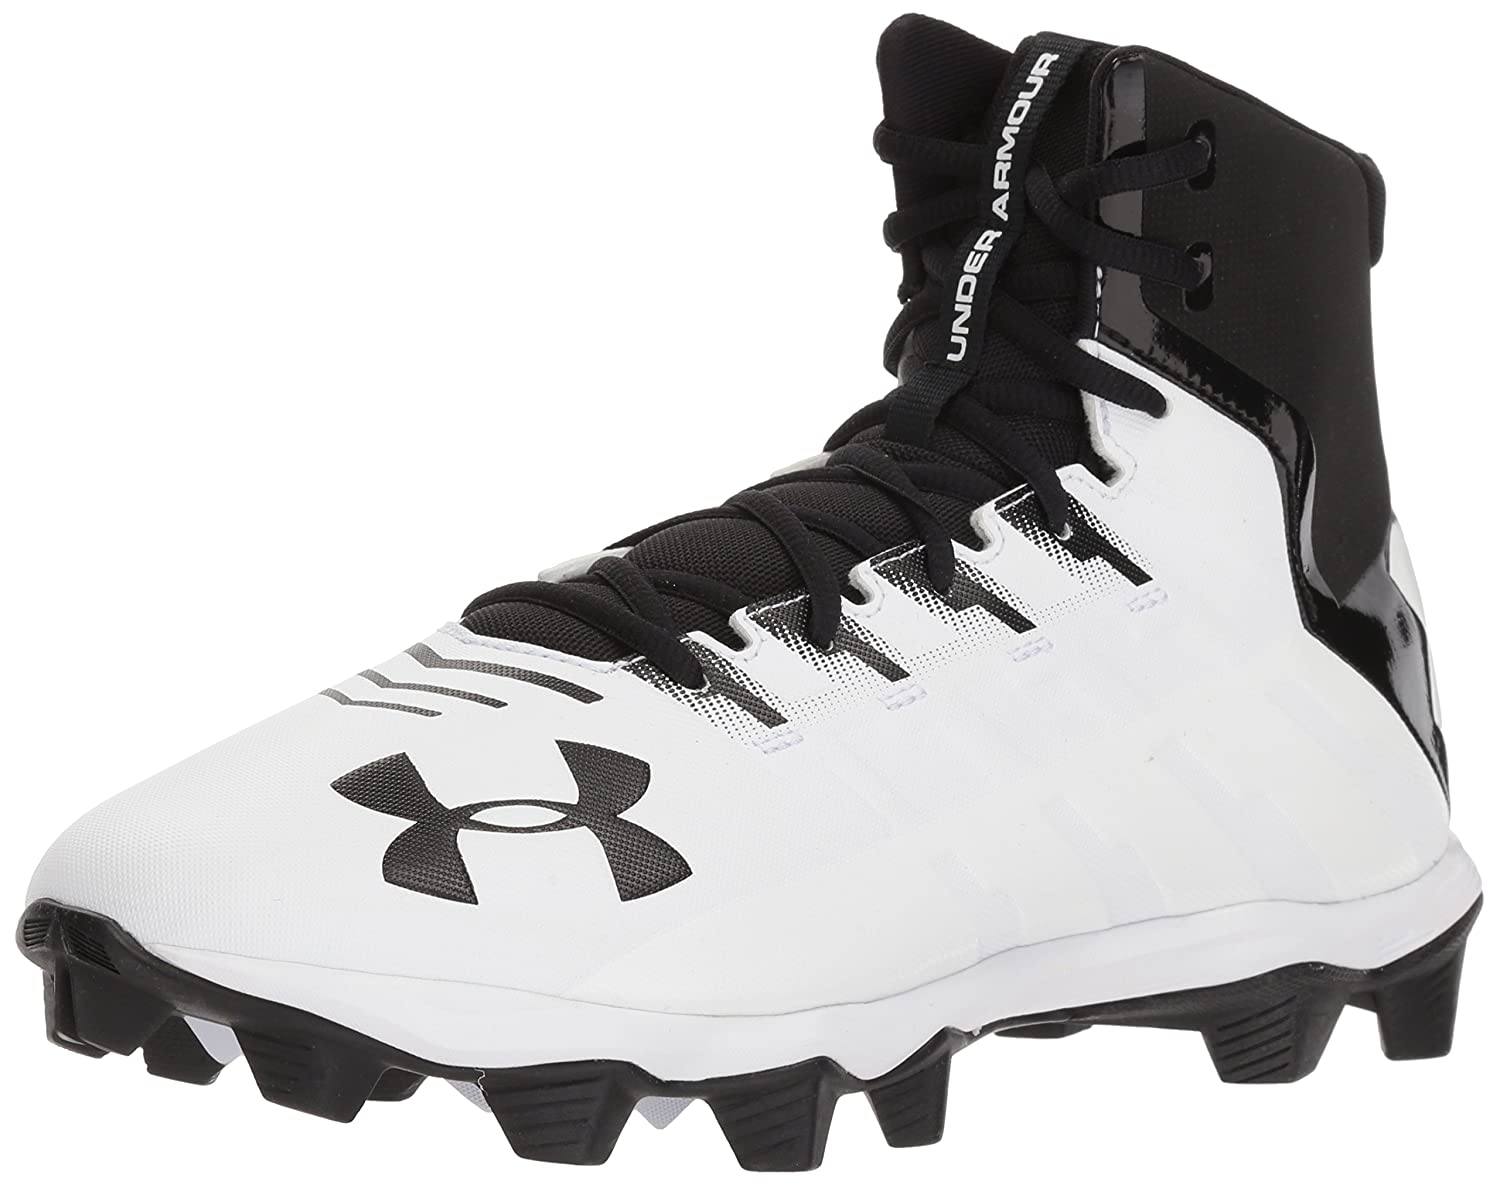 New Mens Under Armour Renegade RM Mid Football Cleats Black//White Sz 11 M